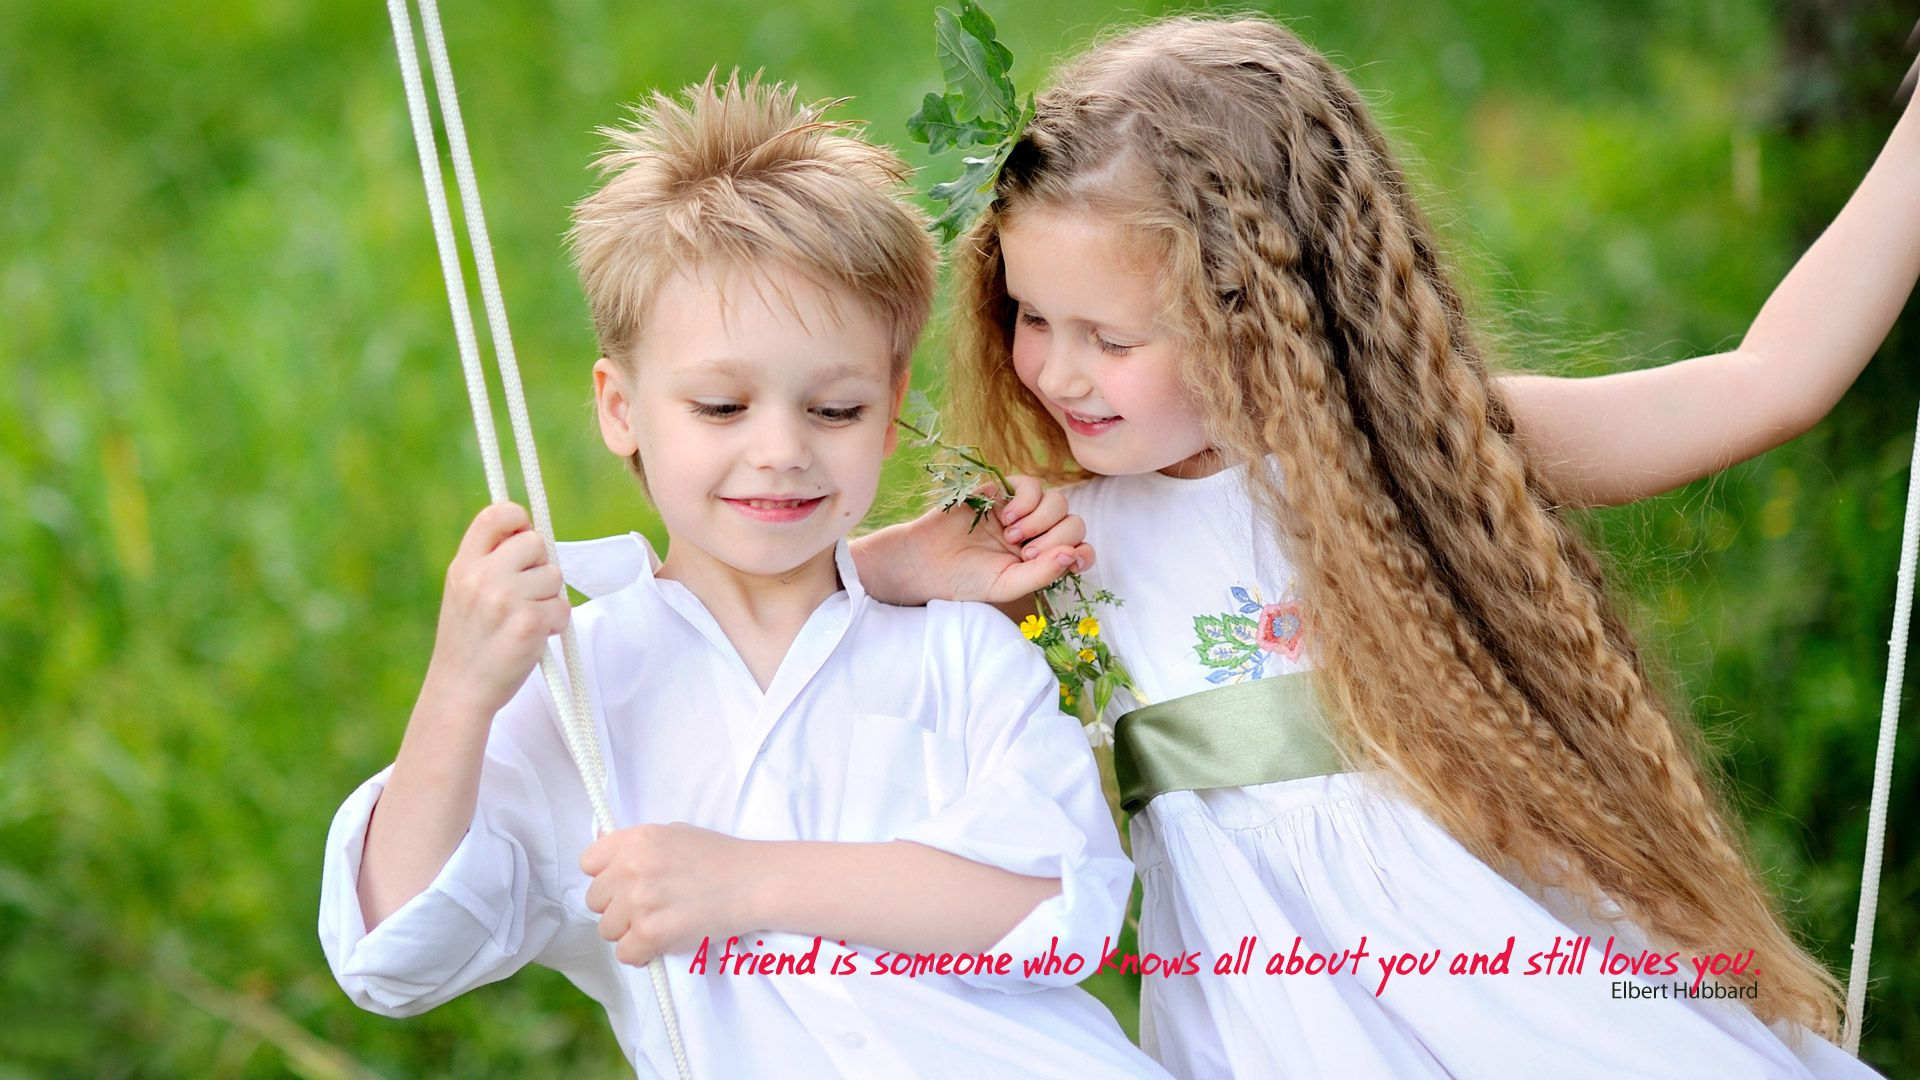 cute-childs-wishes-happy-friendship-day-wallpaper best friendship